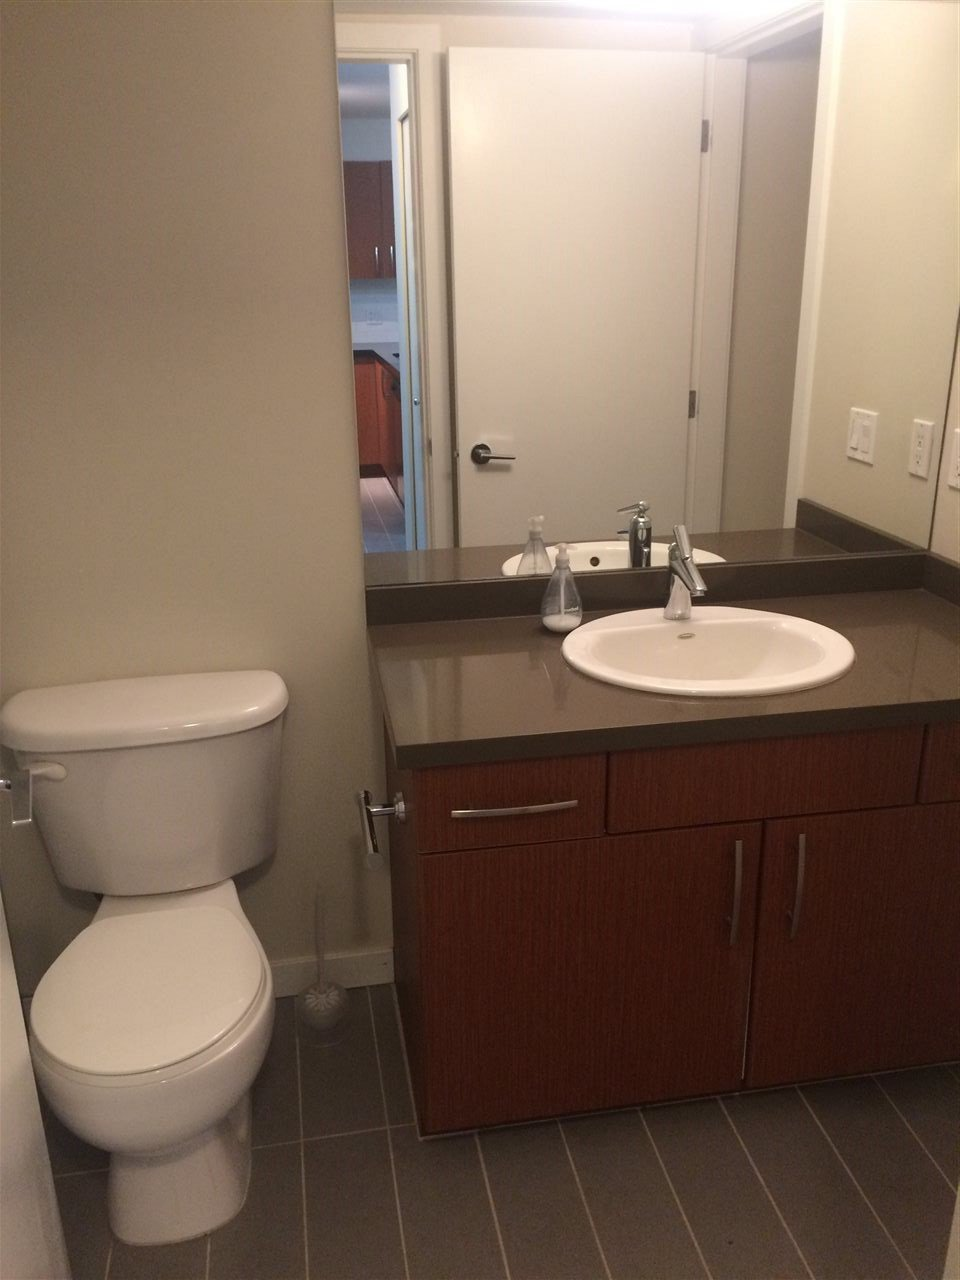 Photo 4: Photos: 208 7337 MACPHERSON Avenue in Burnaby: Metrotown Condo for sale (Burnaby South)  : MLS®# R2208258